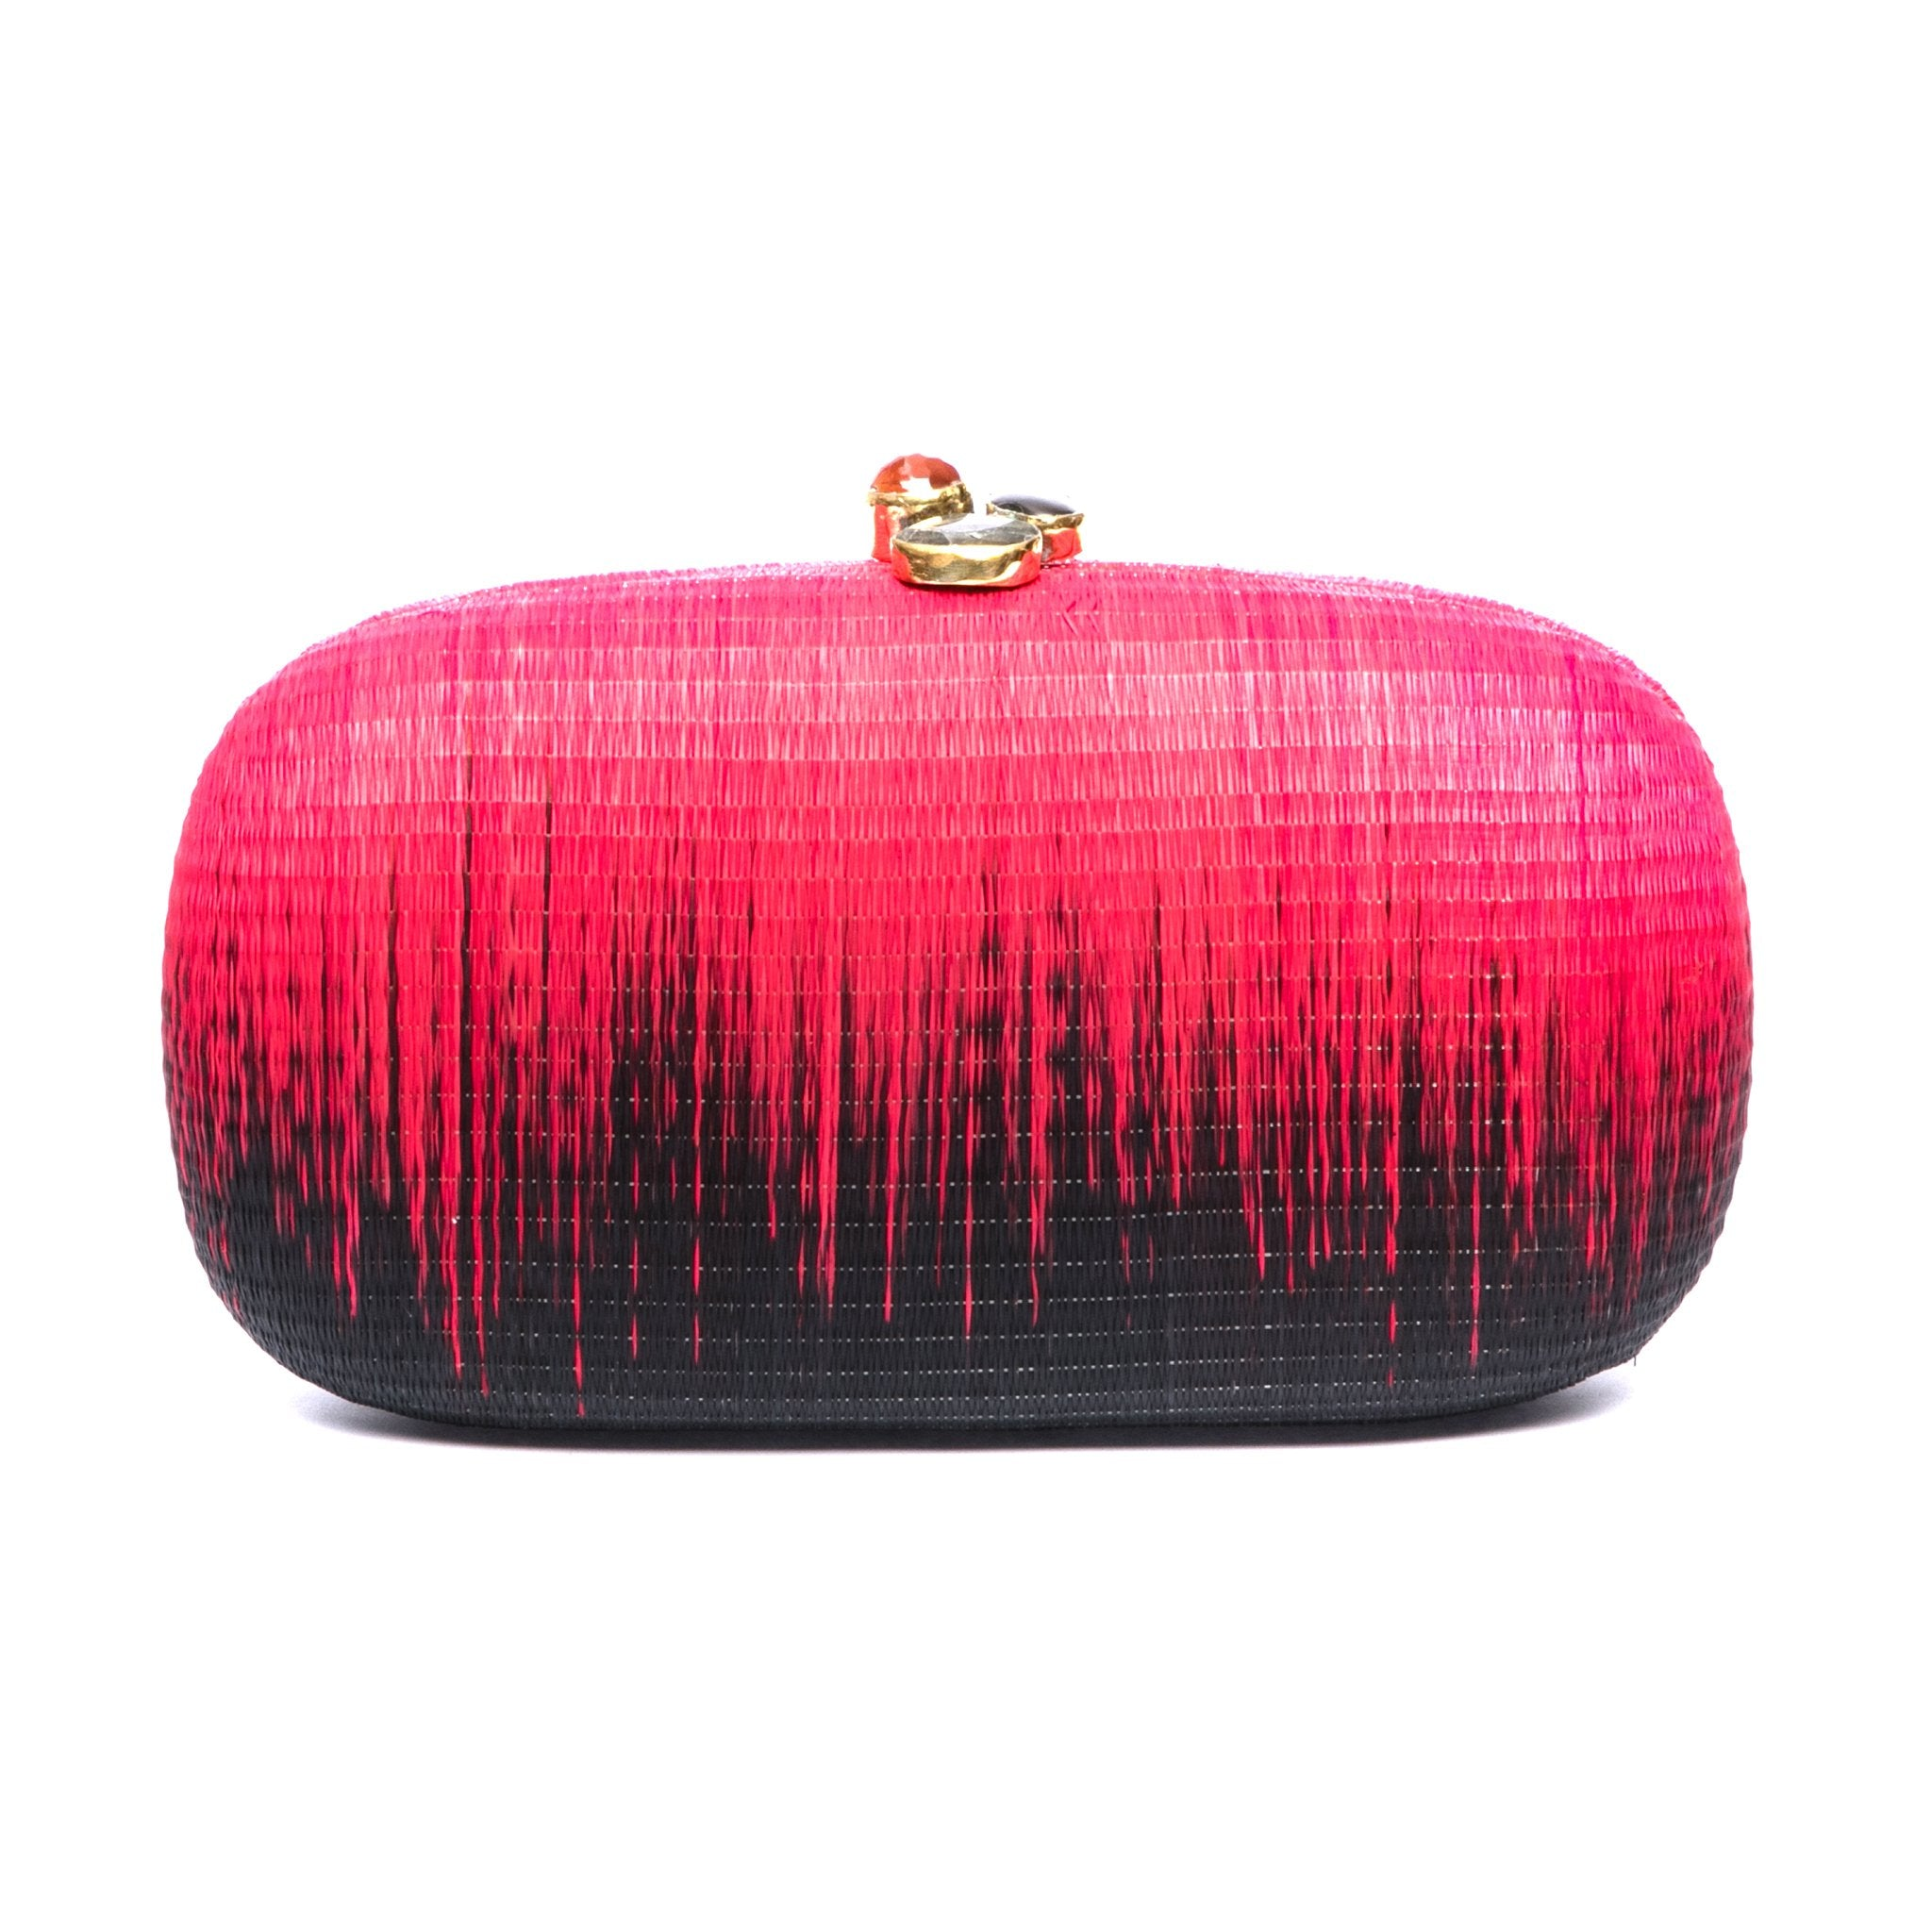 Horizon Oval Clutch